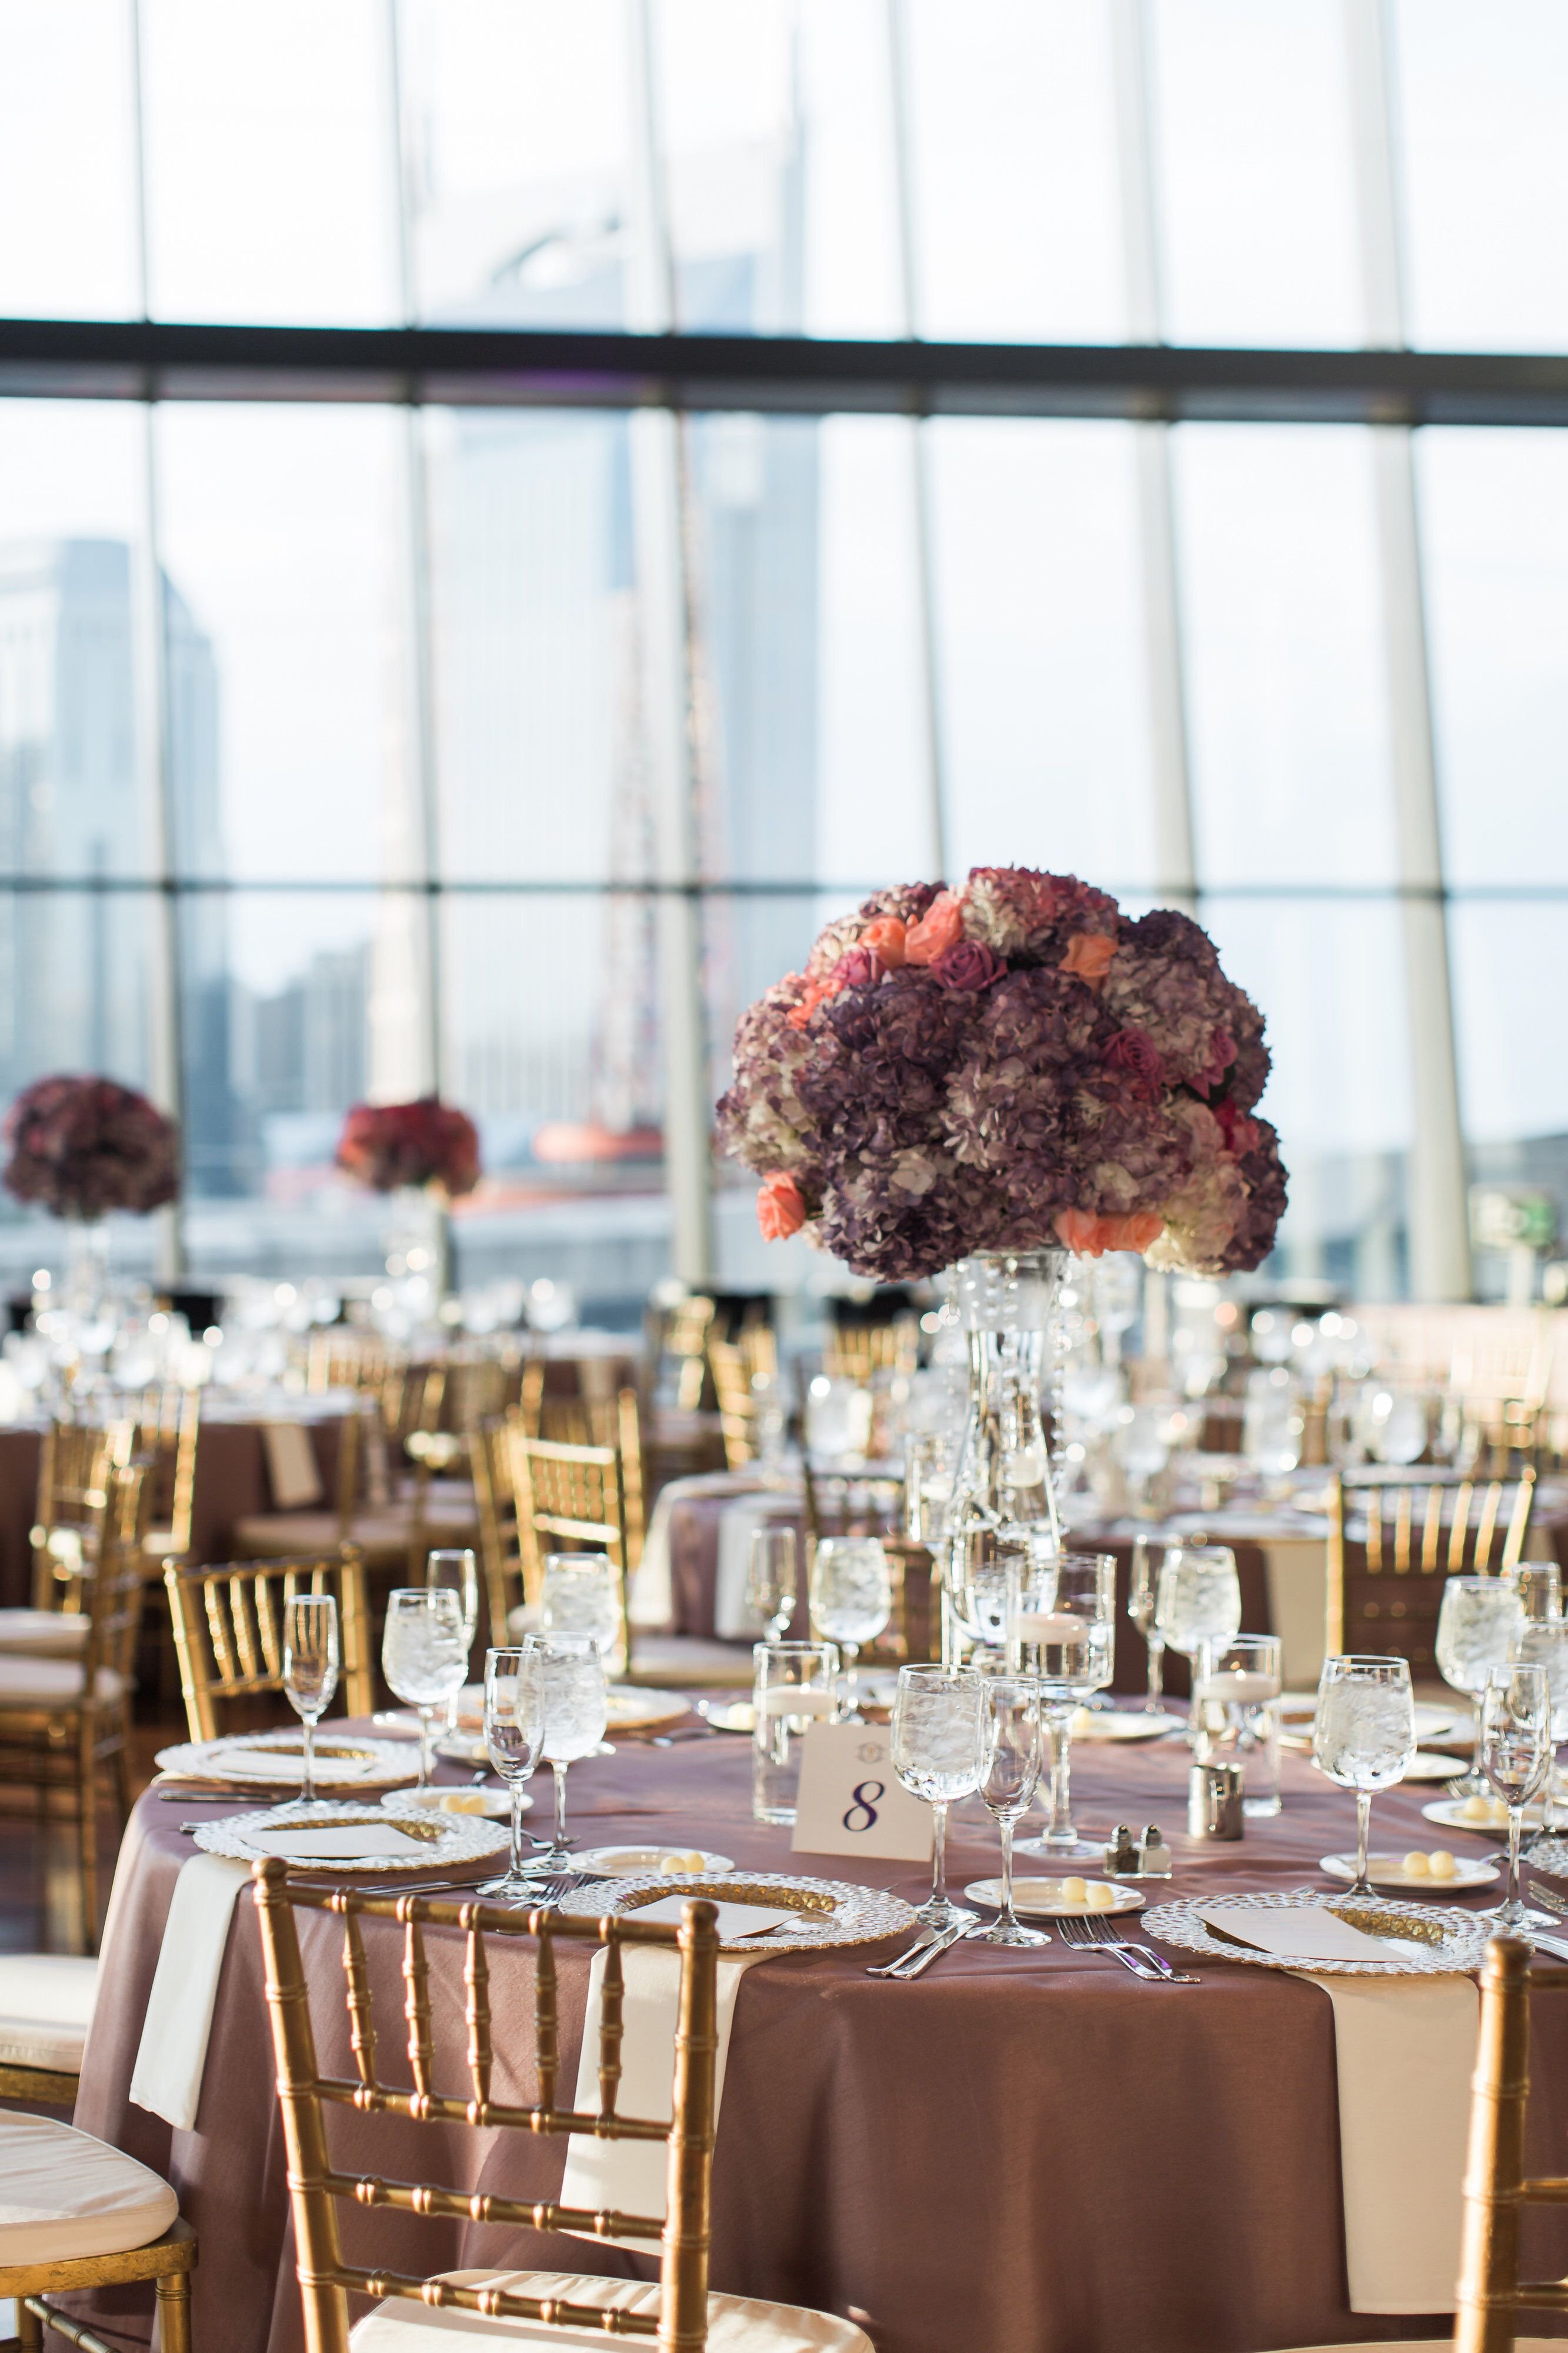 Luxury Nashville wedding at the Country Music Hall of Fame, table design and floral toppers by Nashville Wedding Planner and designer Paige Brown Designs